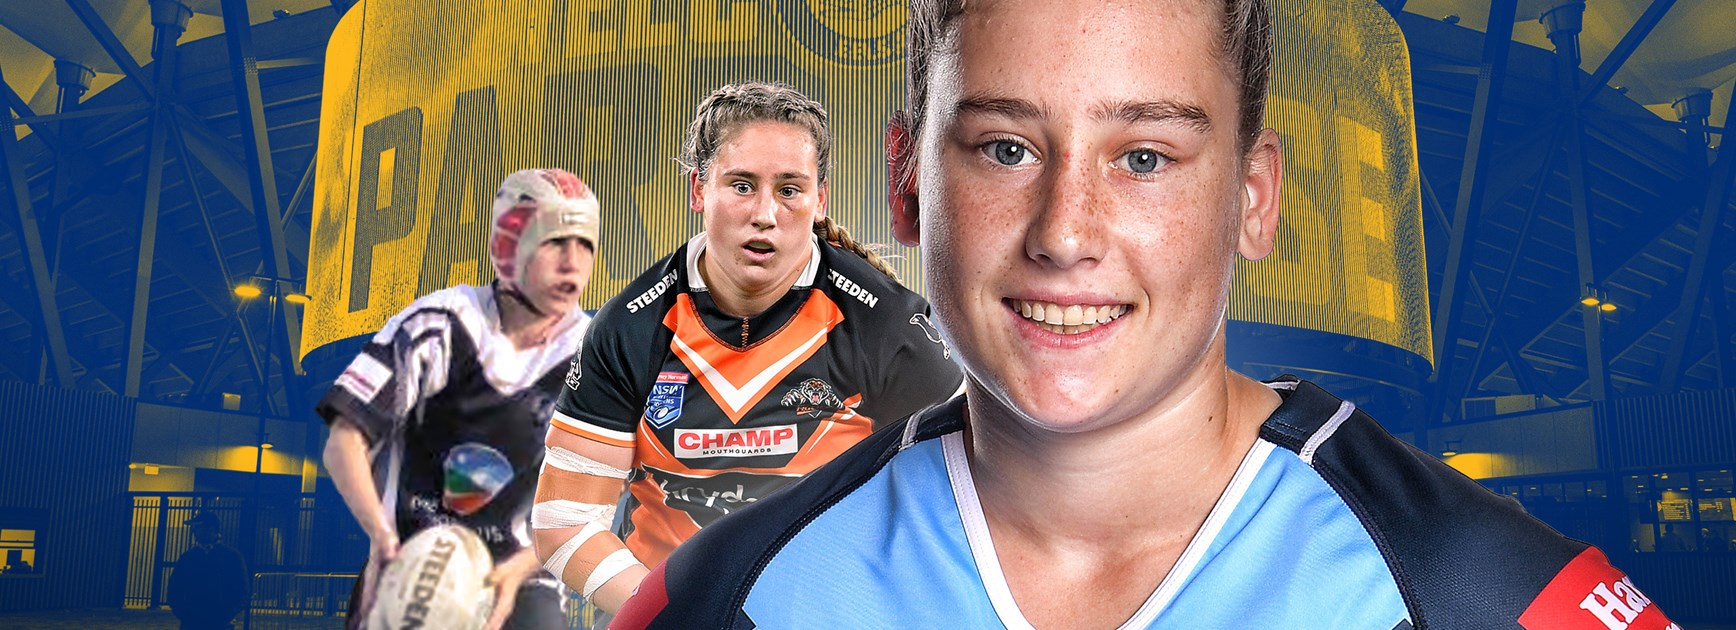 Curtain's pathway reveals a window into NRLW's future